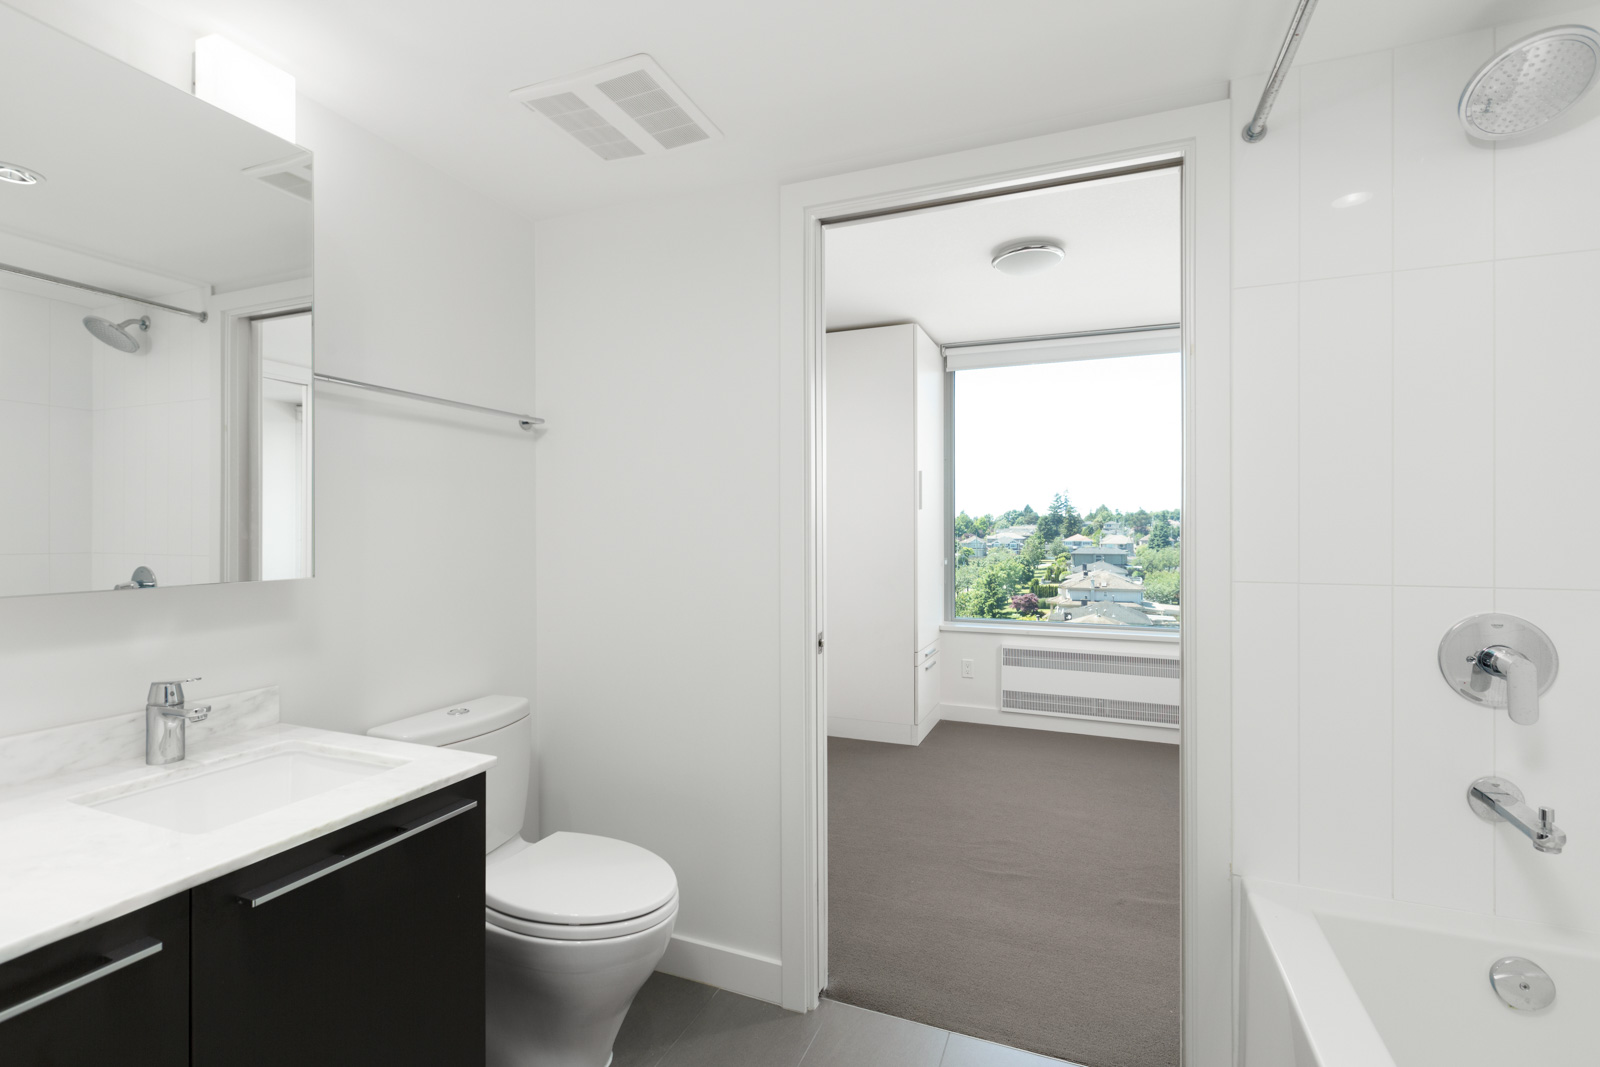 Elegant bathroom with under-the-sink storage and mirror over the sink with a bathtub, showerhead, and ventilation in a rental condo in Vancouver offered by Birds Nest Properties.